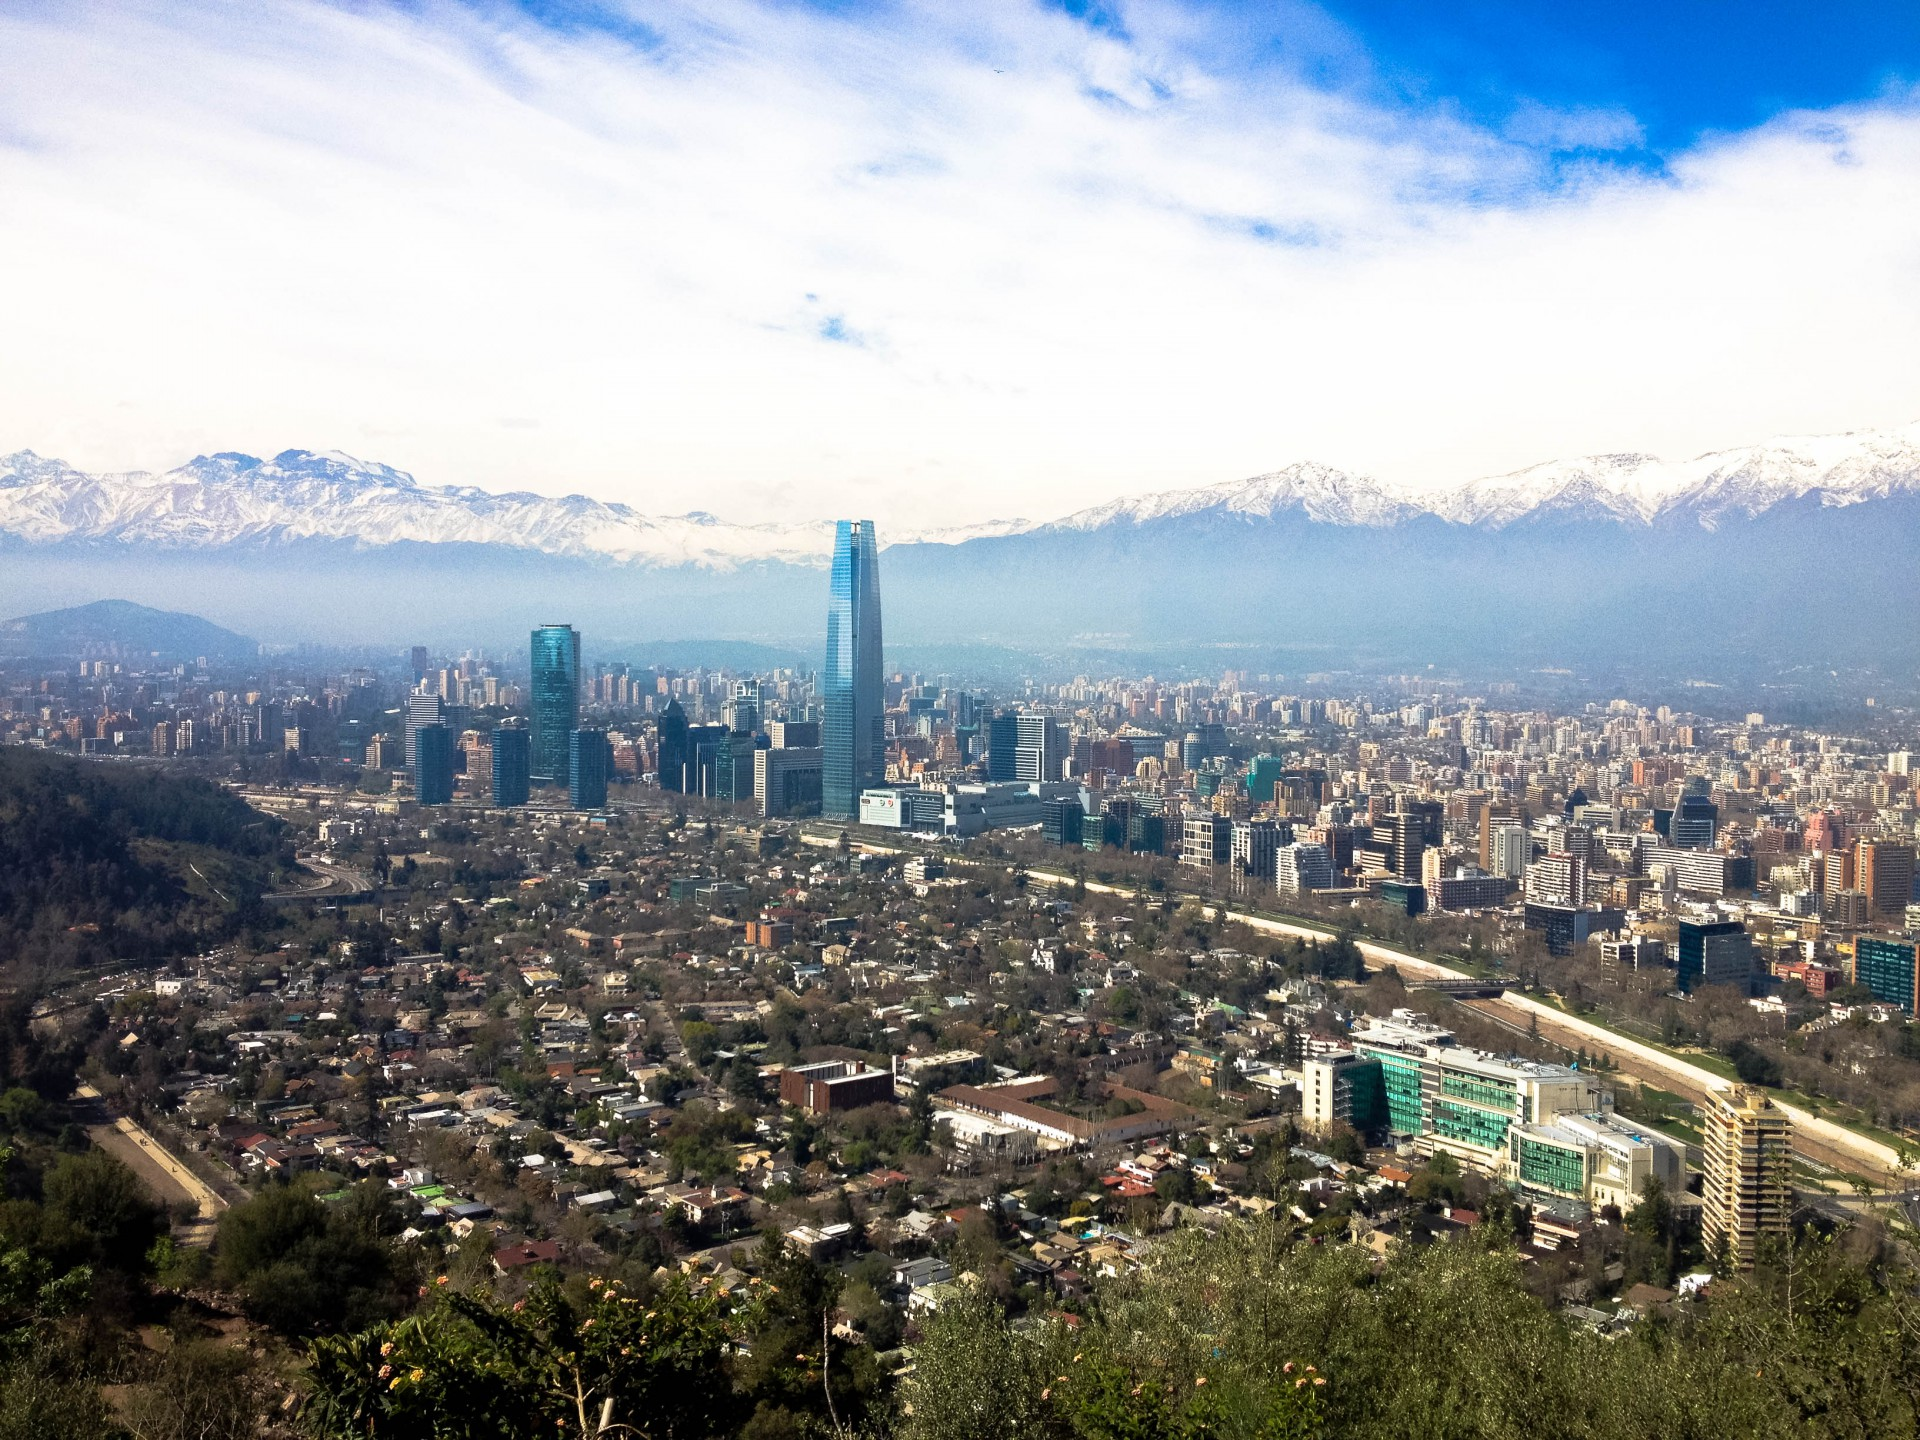 Pensamiento: It's always warm in Chile – NOT